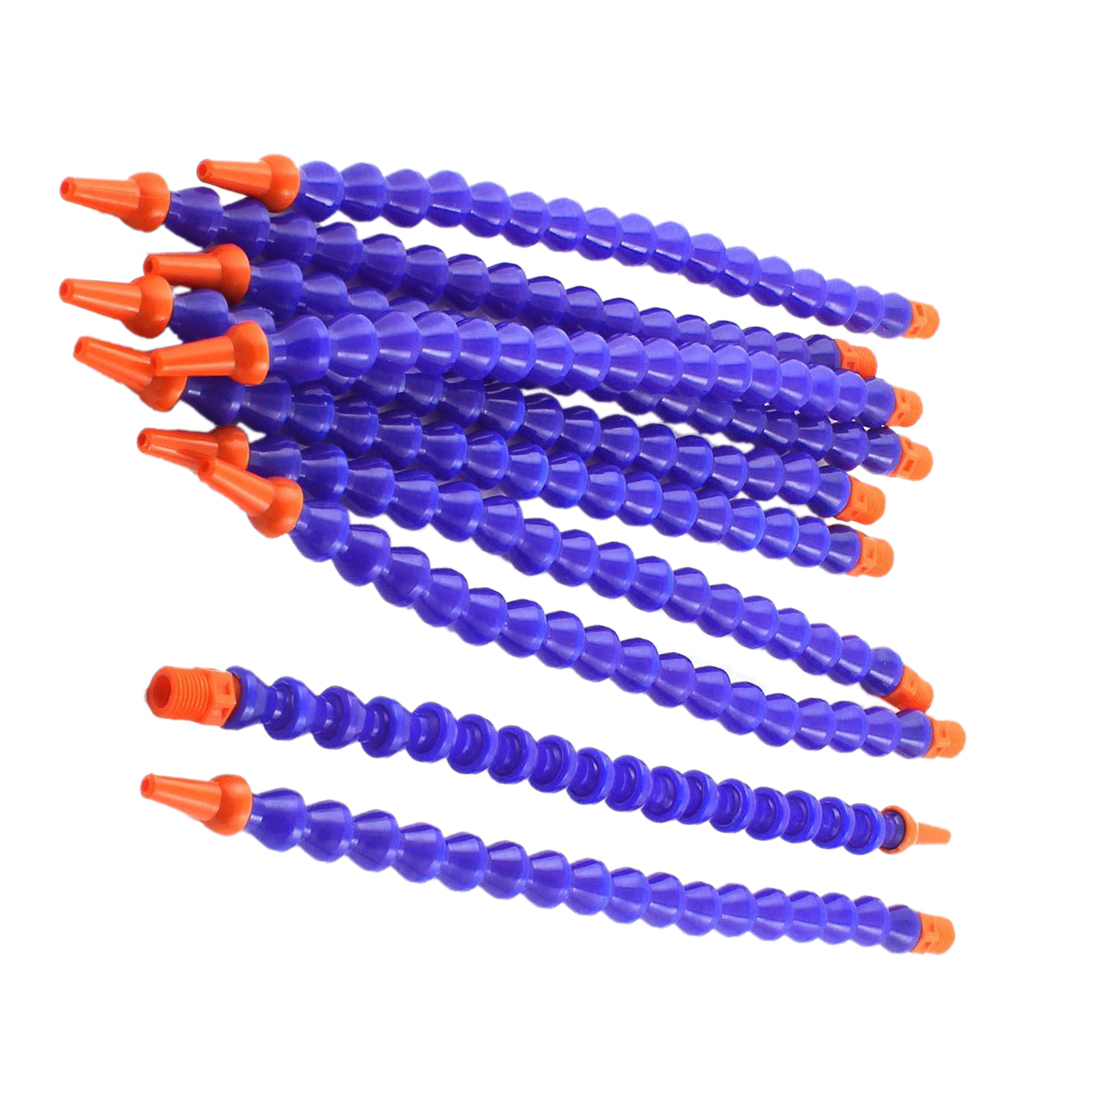 10PCS Round Nozzle 1/4PT Flexible Oil Coolant Pipe Hose Blue Orange